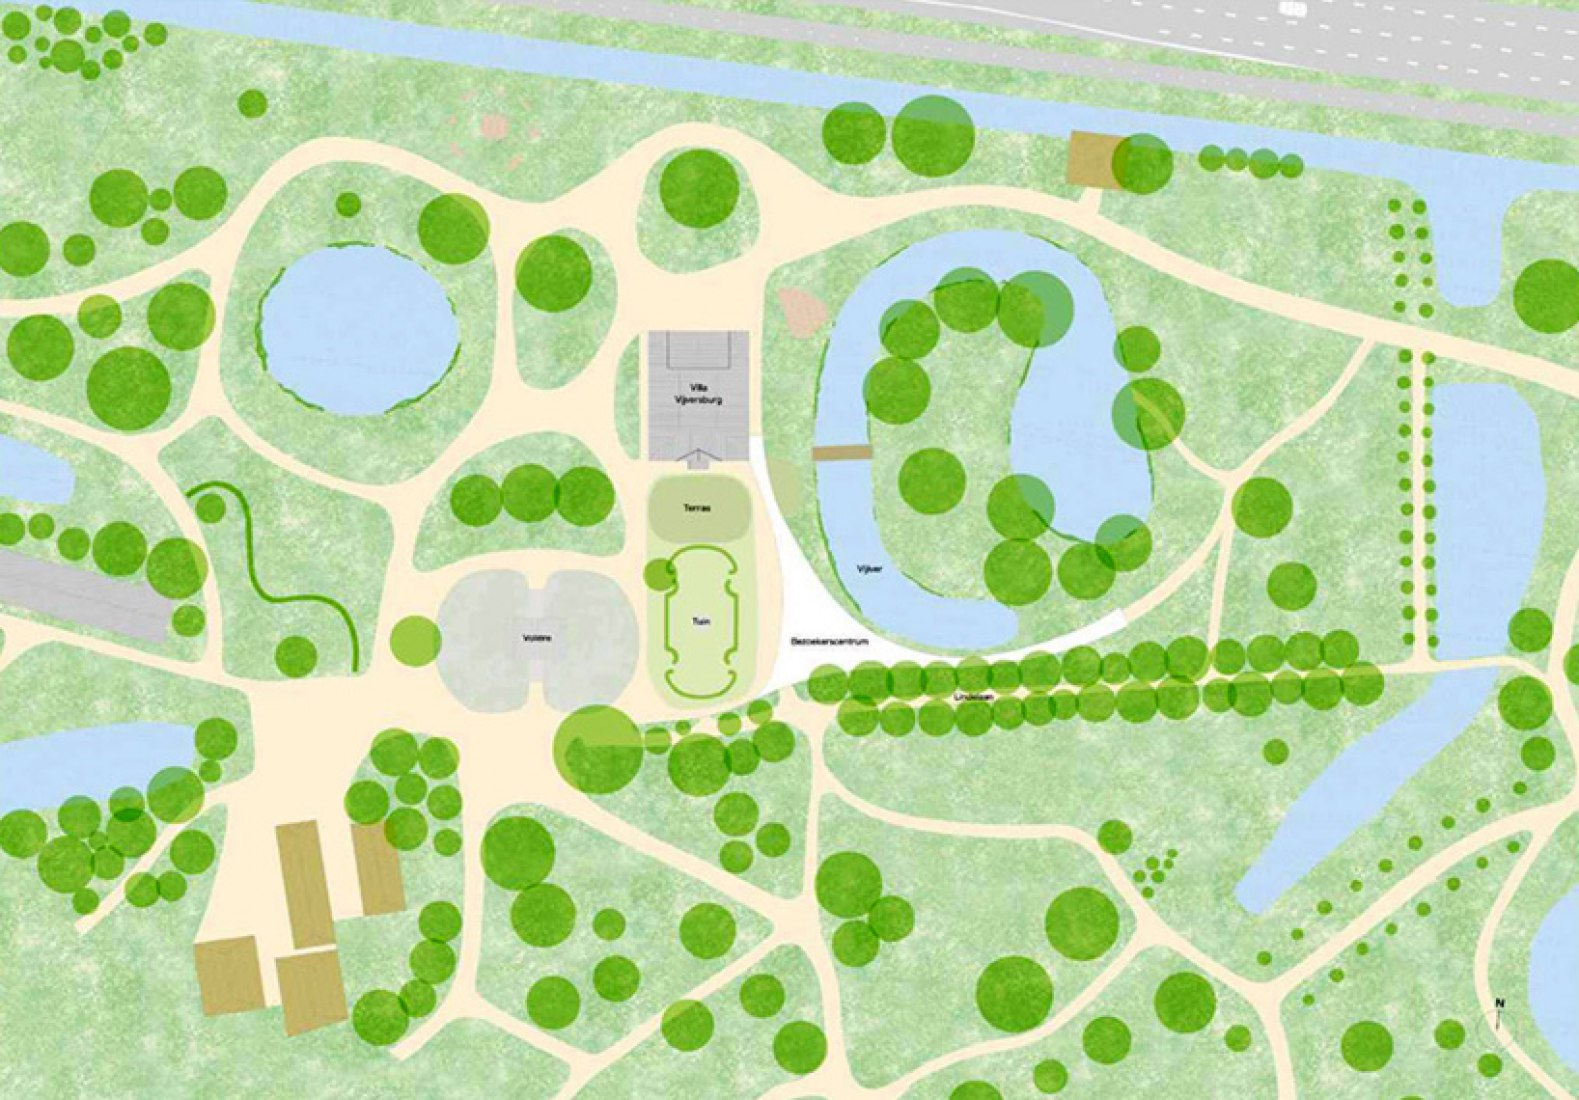 Site plan of the new visitor center.